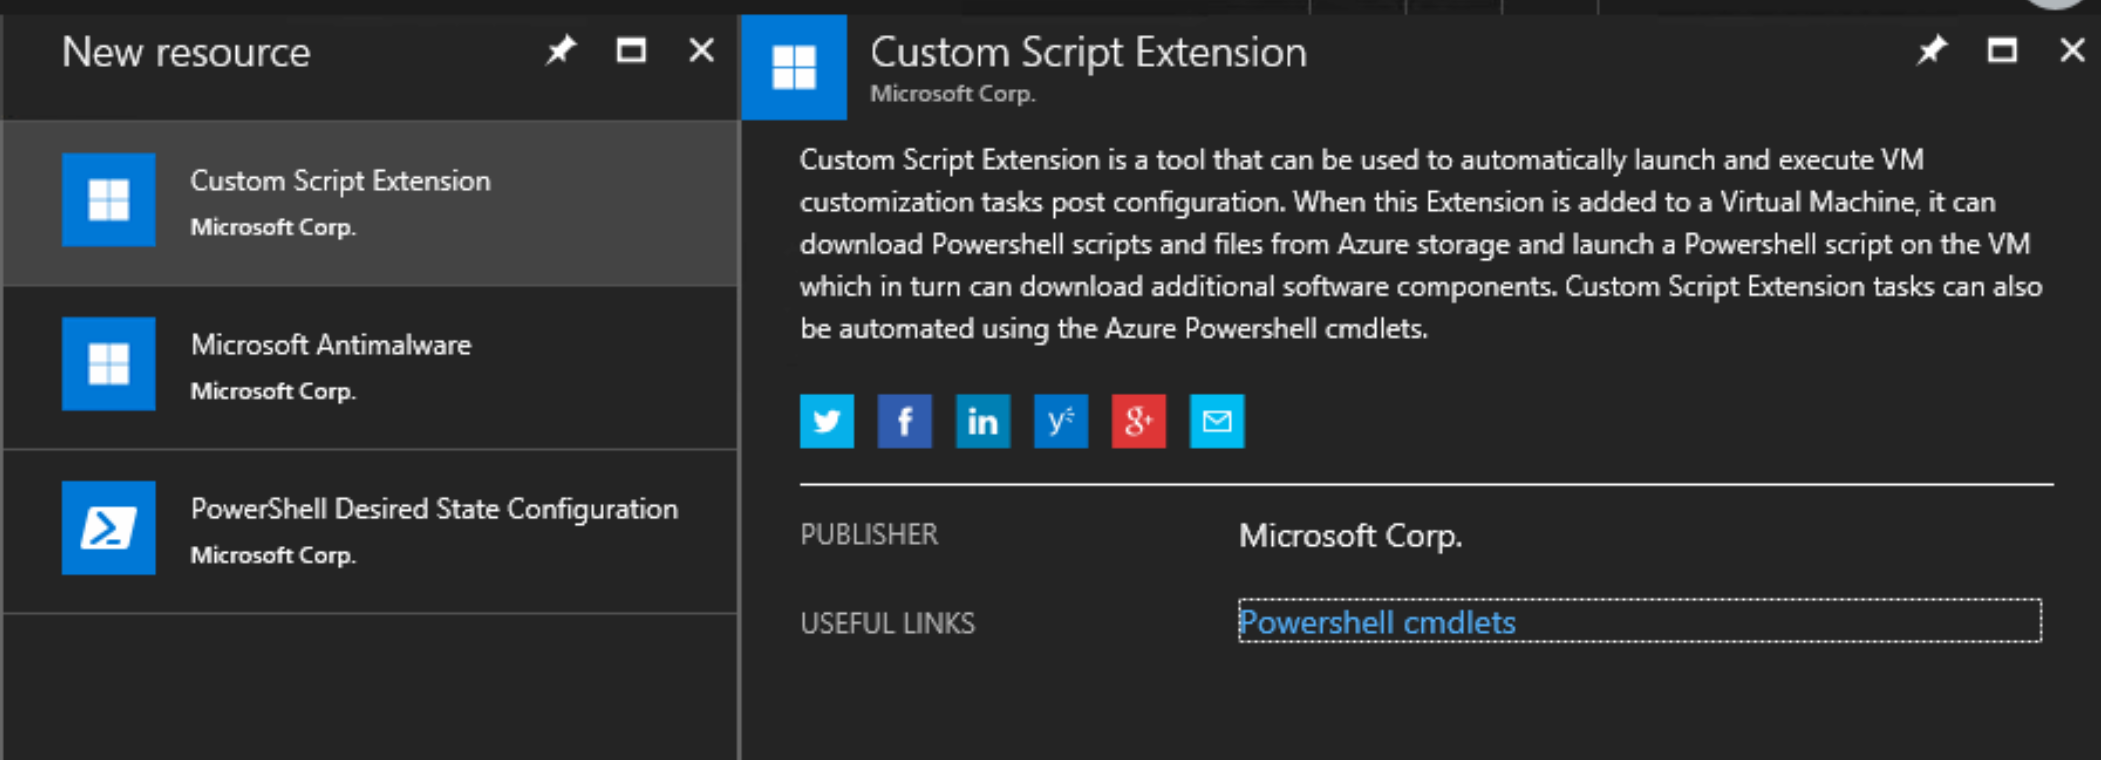 Custom Script Extension - Building Hybrid Clouds with Azure